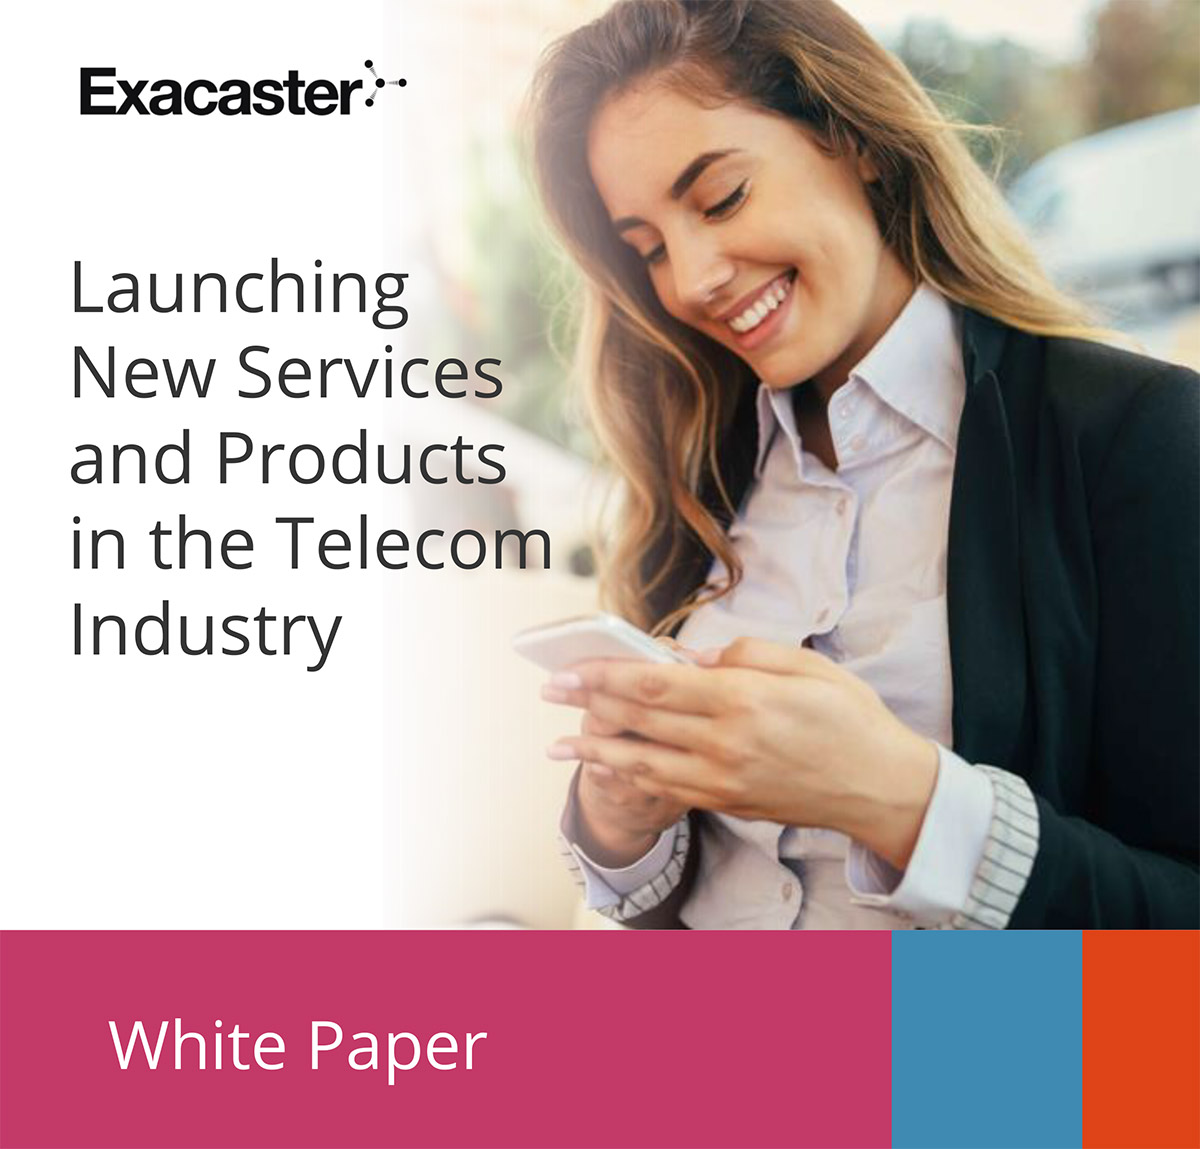 White paper Launching New Services and Products in the Telecom Industry